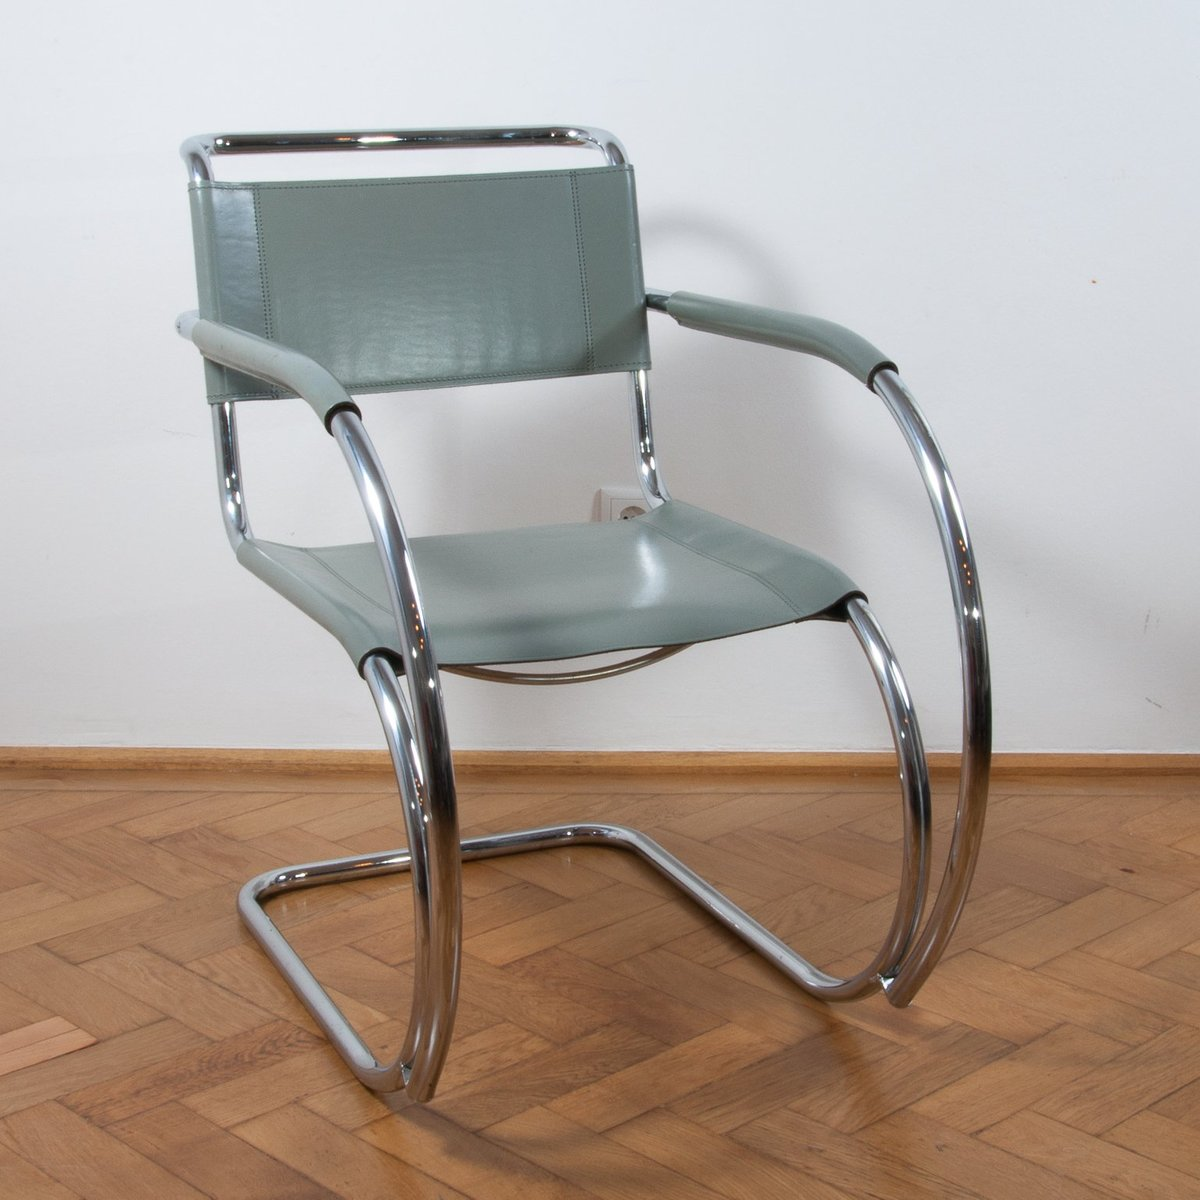 S533 cantilever chair by ludwig mies van der rohe for - Mies van der rohe sedia ...